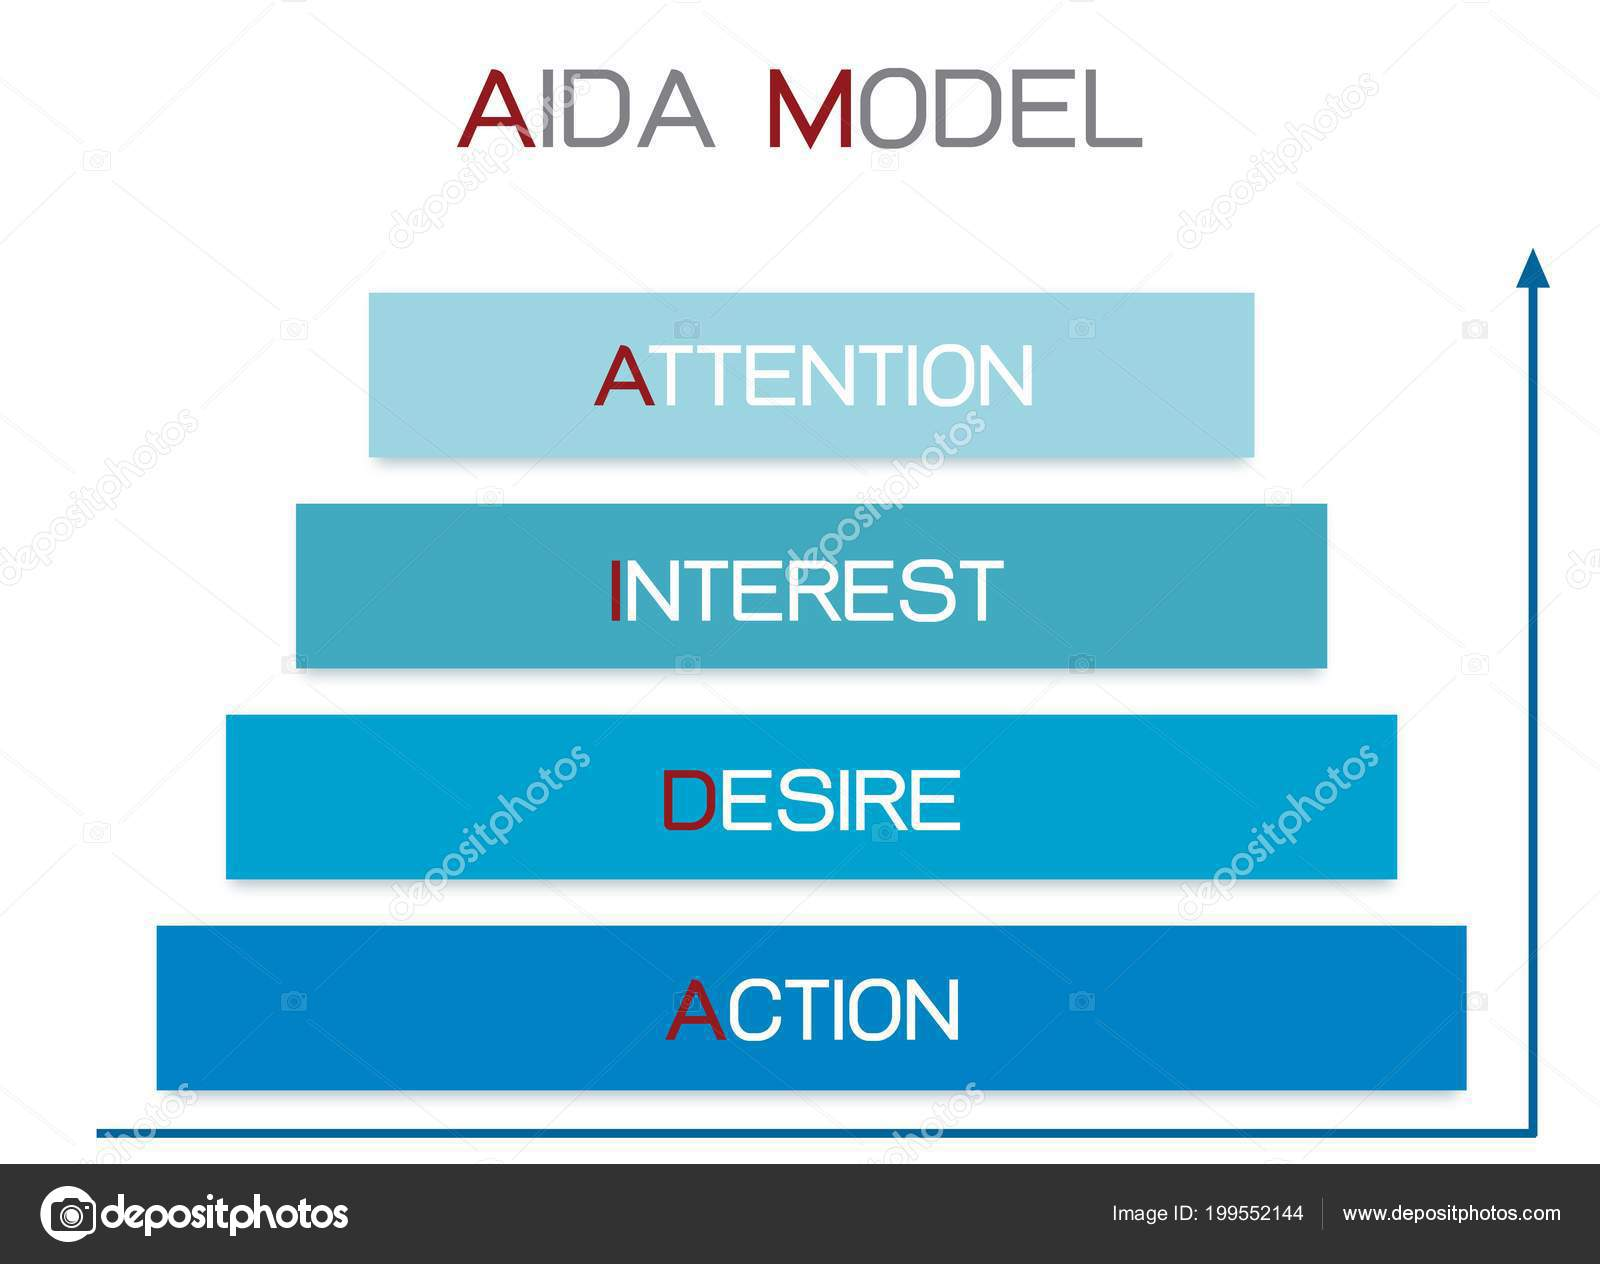 Business Concepts Illustration Pyramid Aida Model Stages